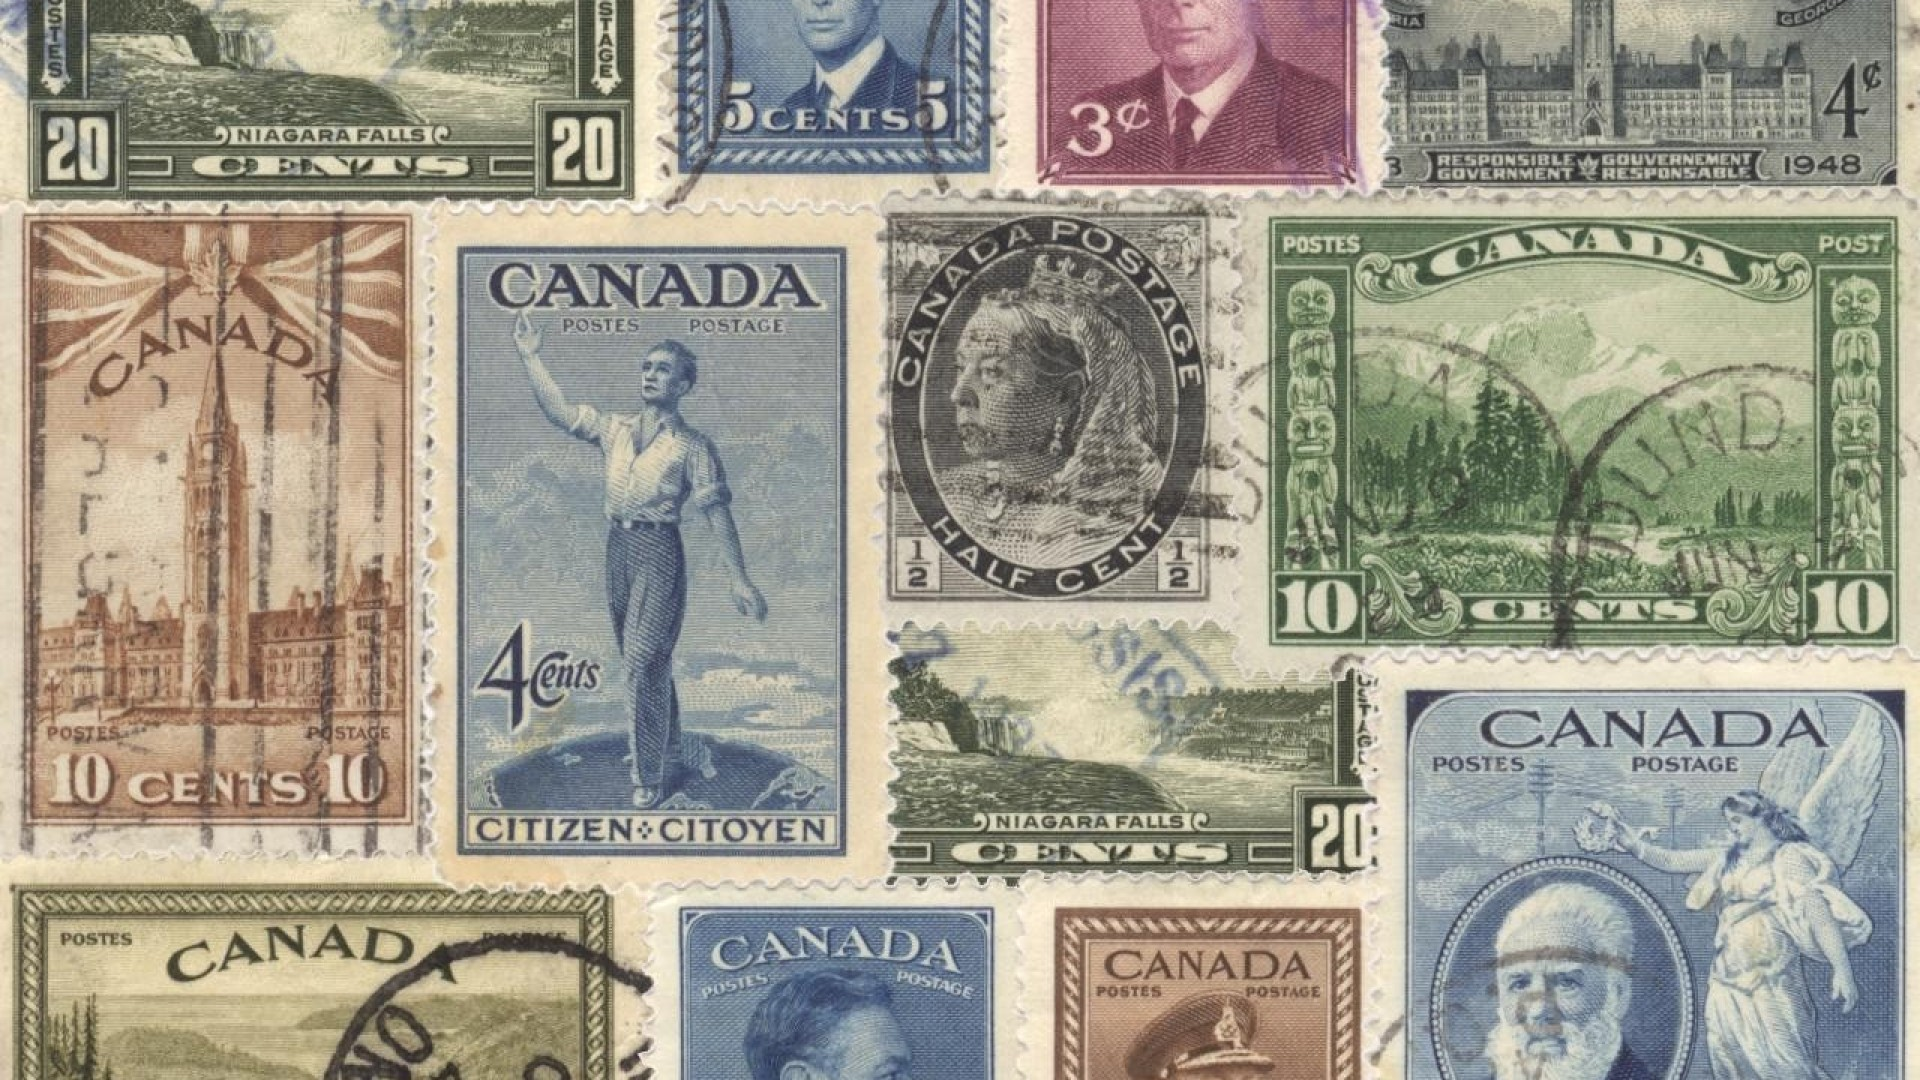 Canadian Vintage Wallpaper   MixHD wallpapers 1920x1080